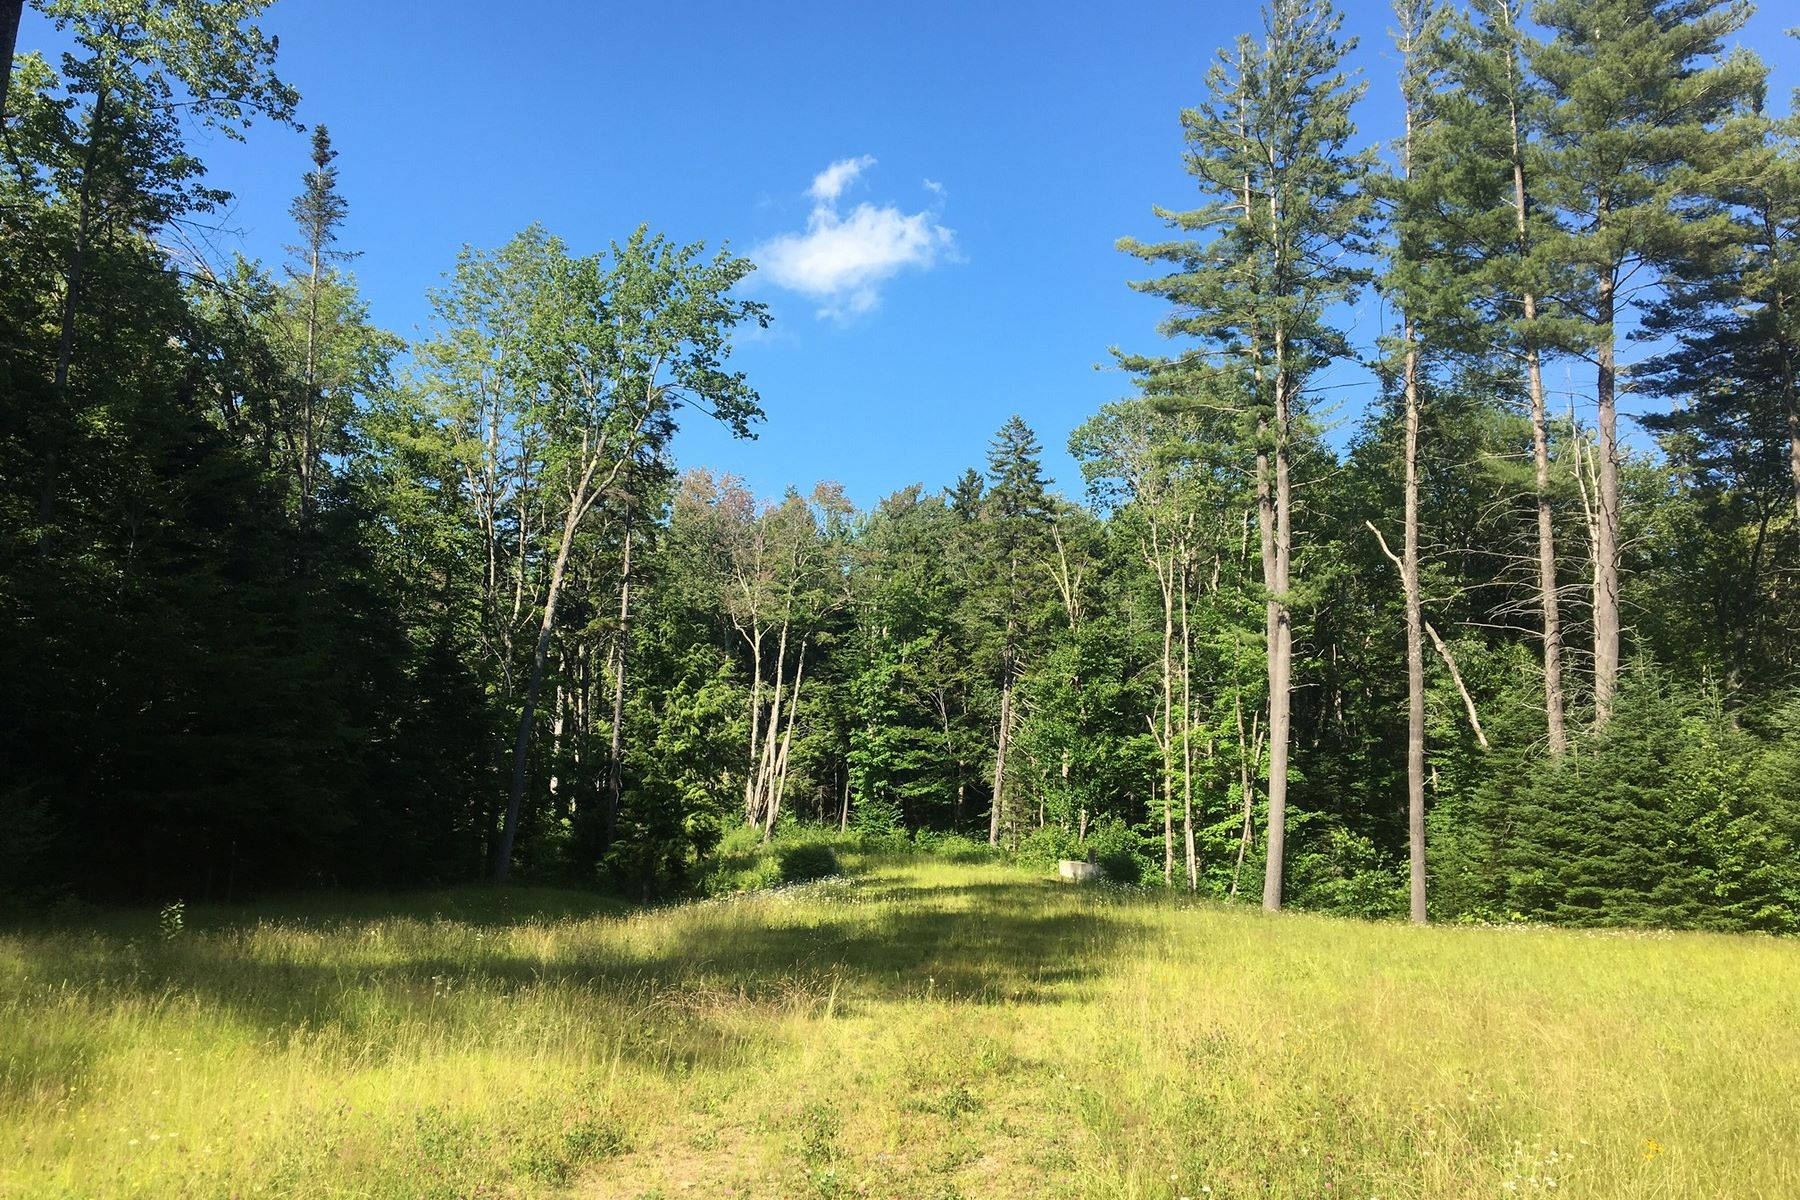 Land for Sale at W Jamaica Road, Stratton W Jamaica Rd Stratton, Vermont 05360 United States